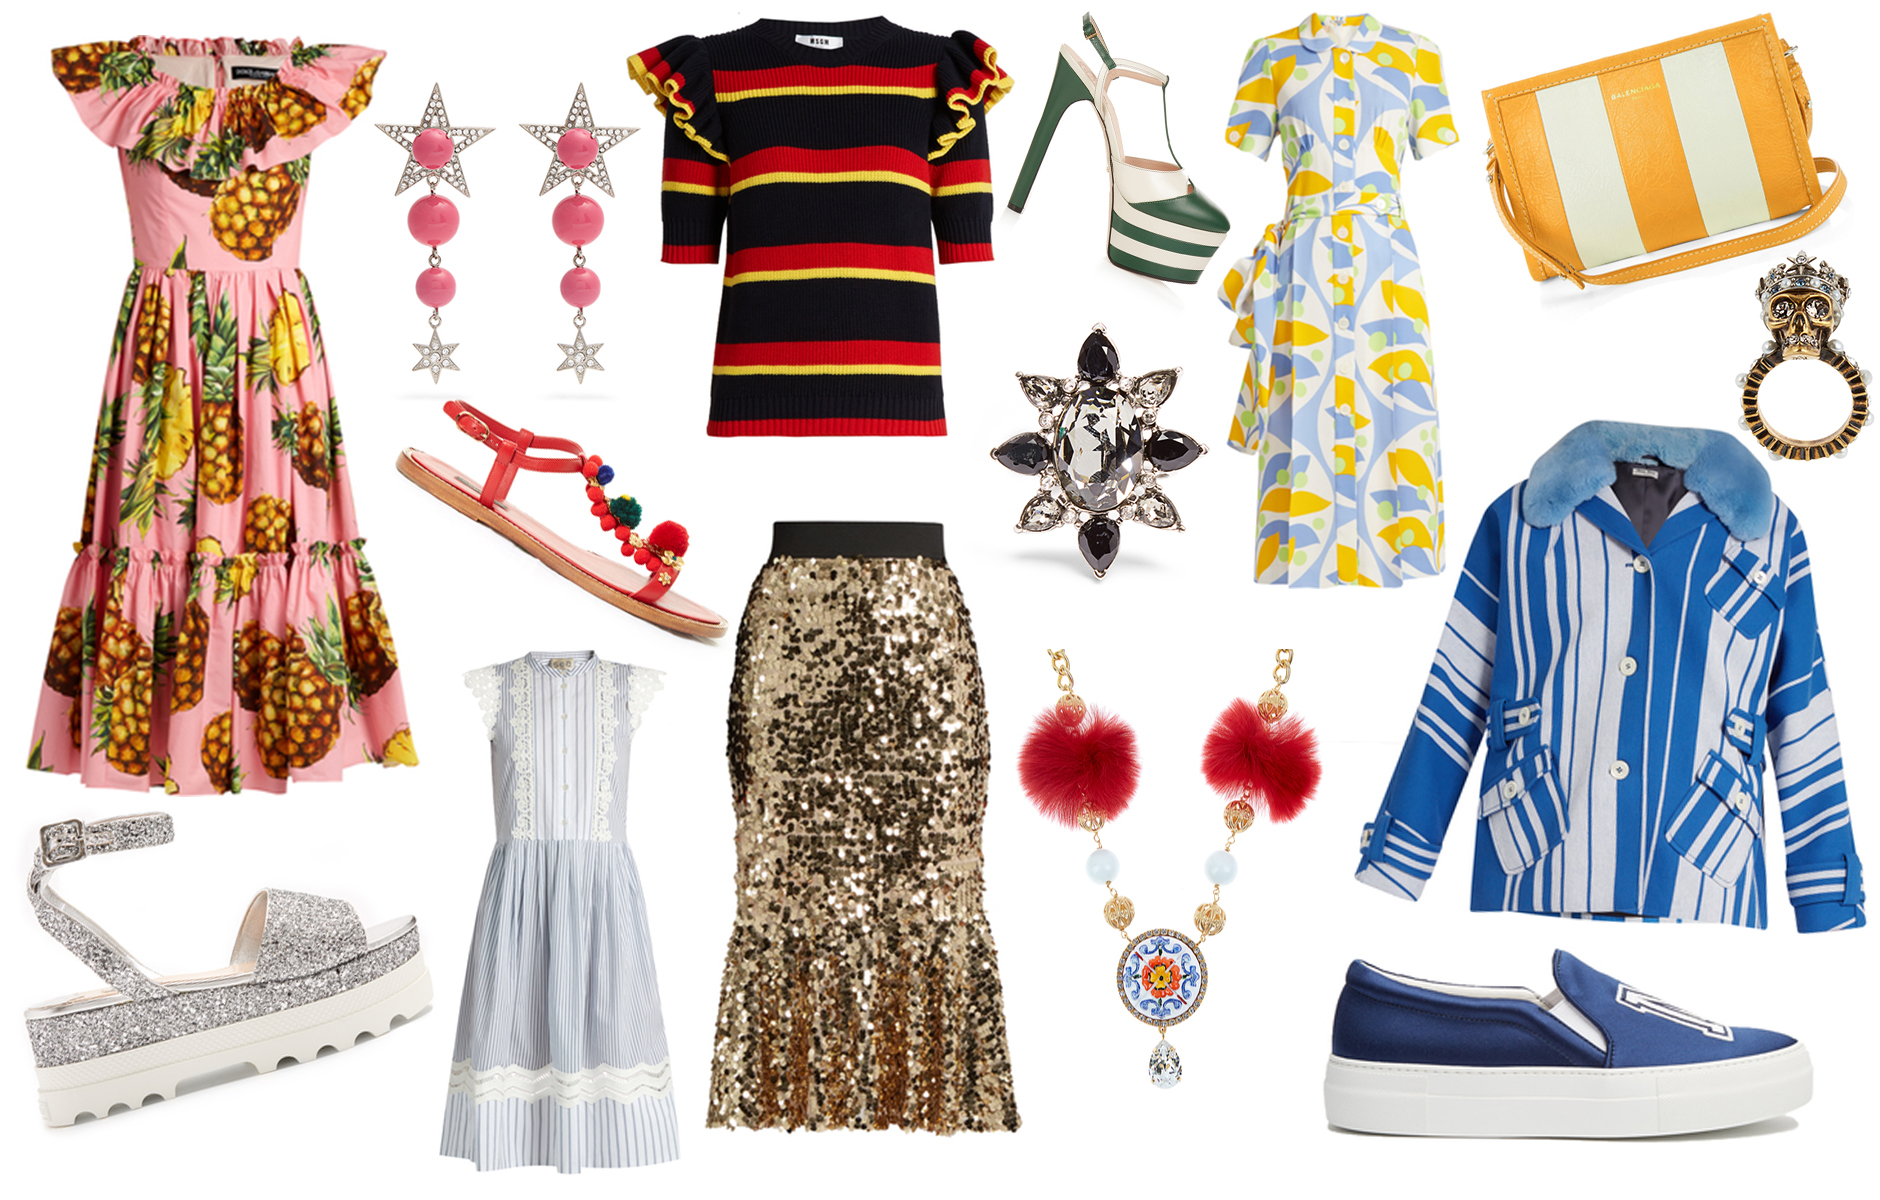 Anna Roufos Sosa of Noir Friday picks the best items from the Matches Fashion Spring Summer sale.